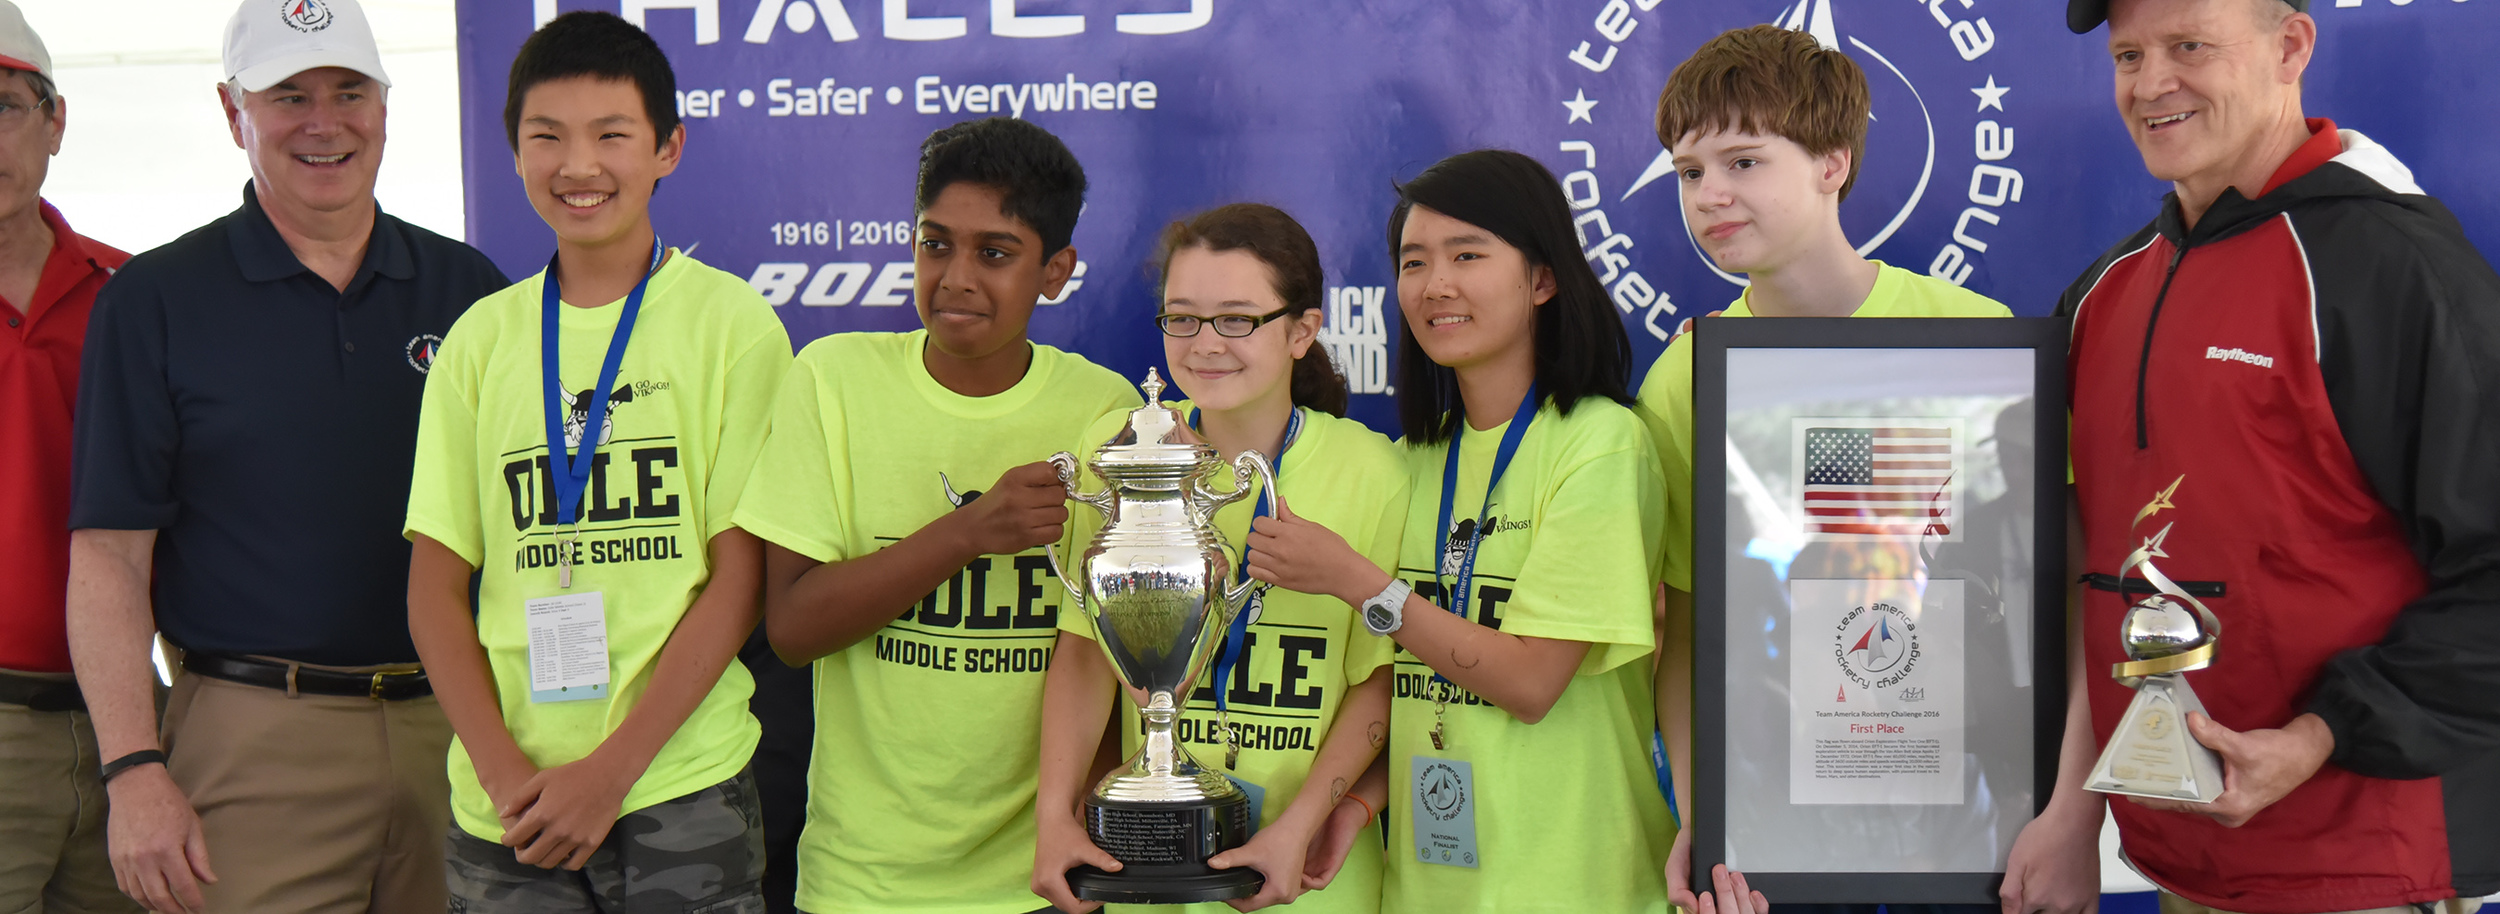 America's rocketry champs on the winners' podium at the Team America Rocketry Challenge. Credit:  Team America Rocketry Challenge